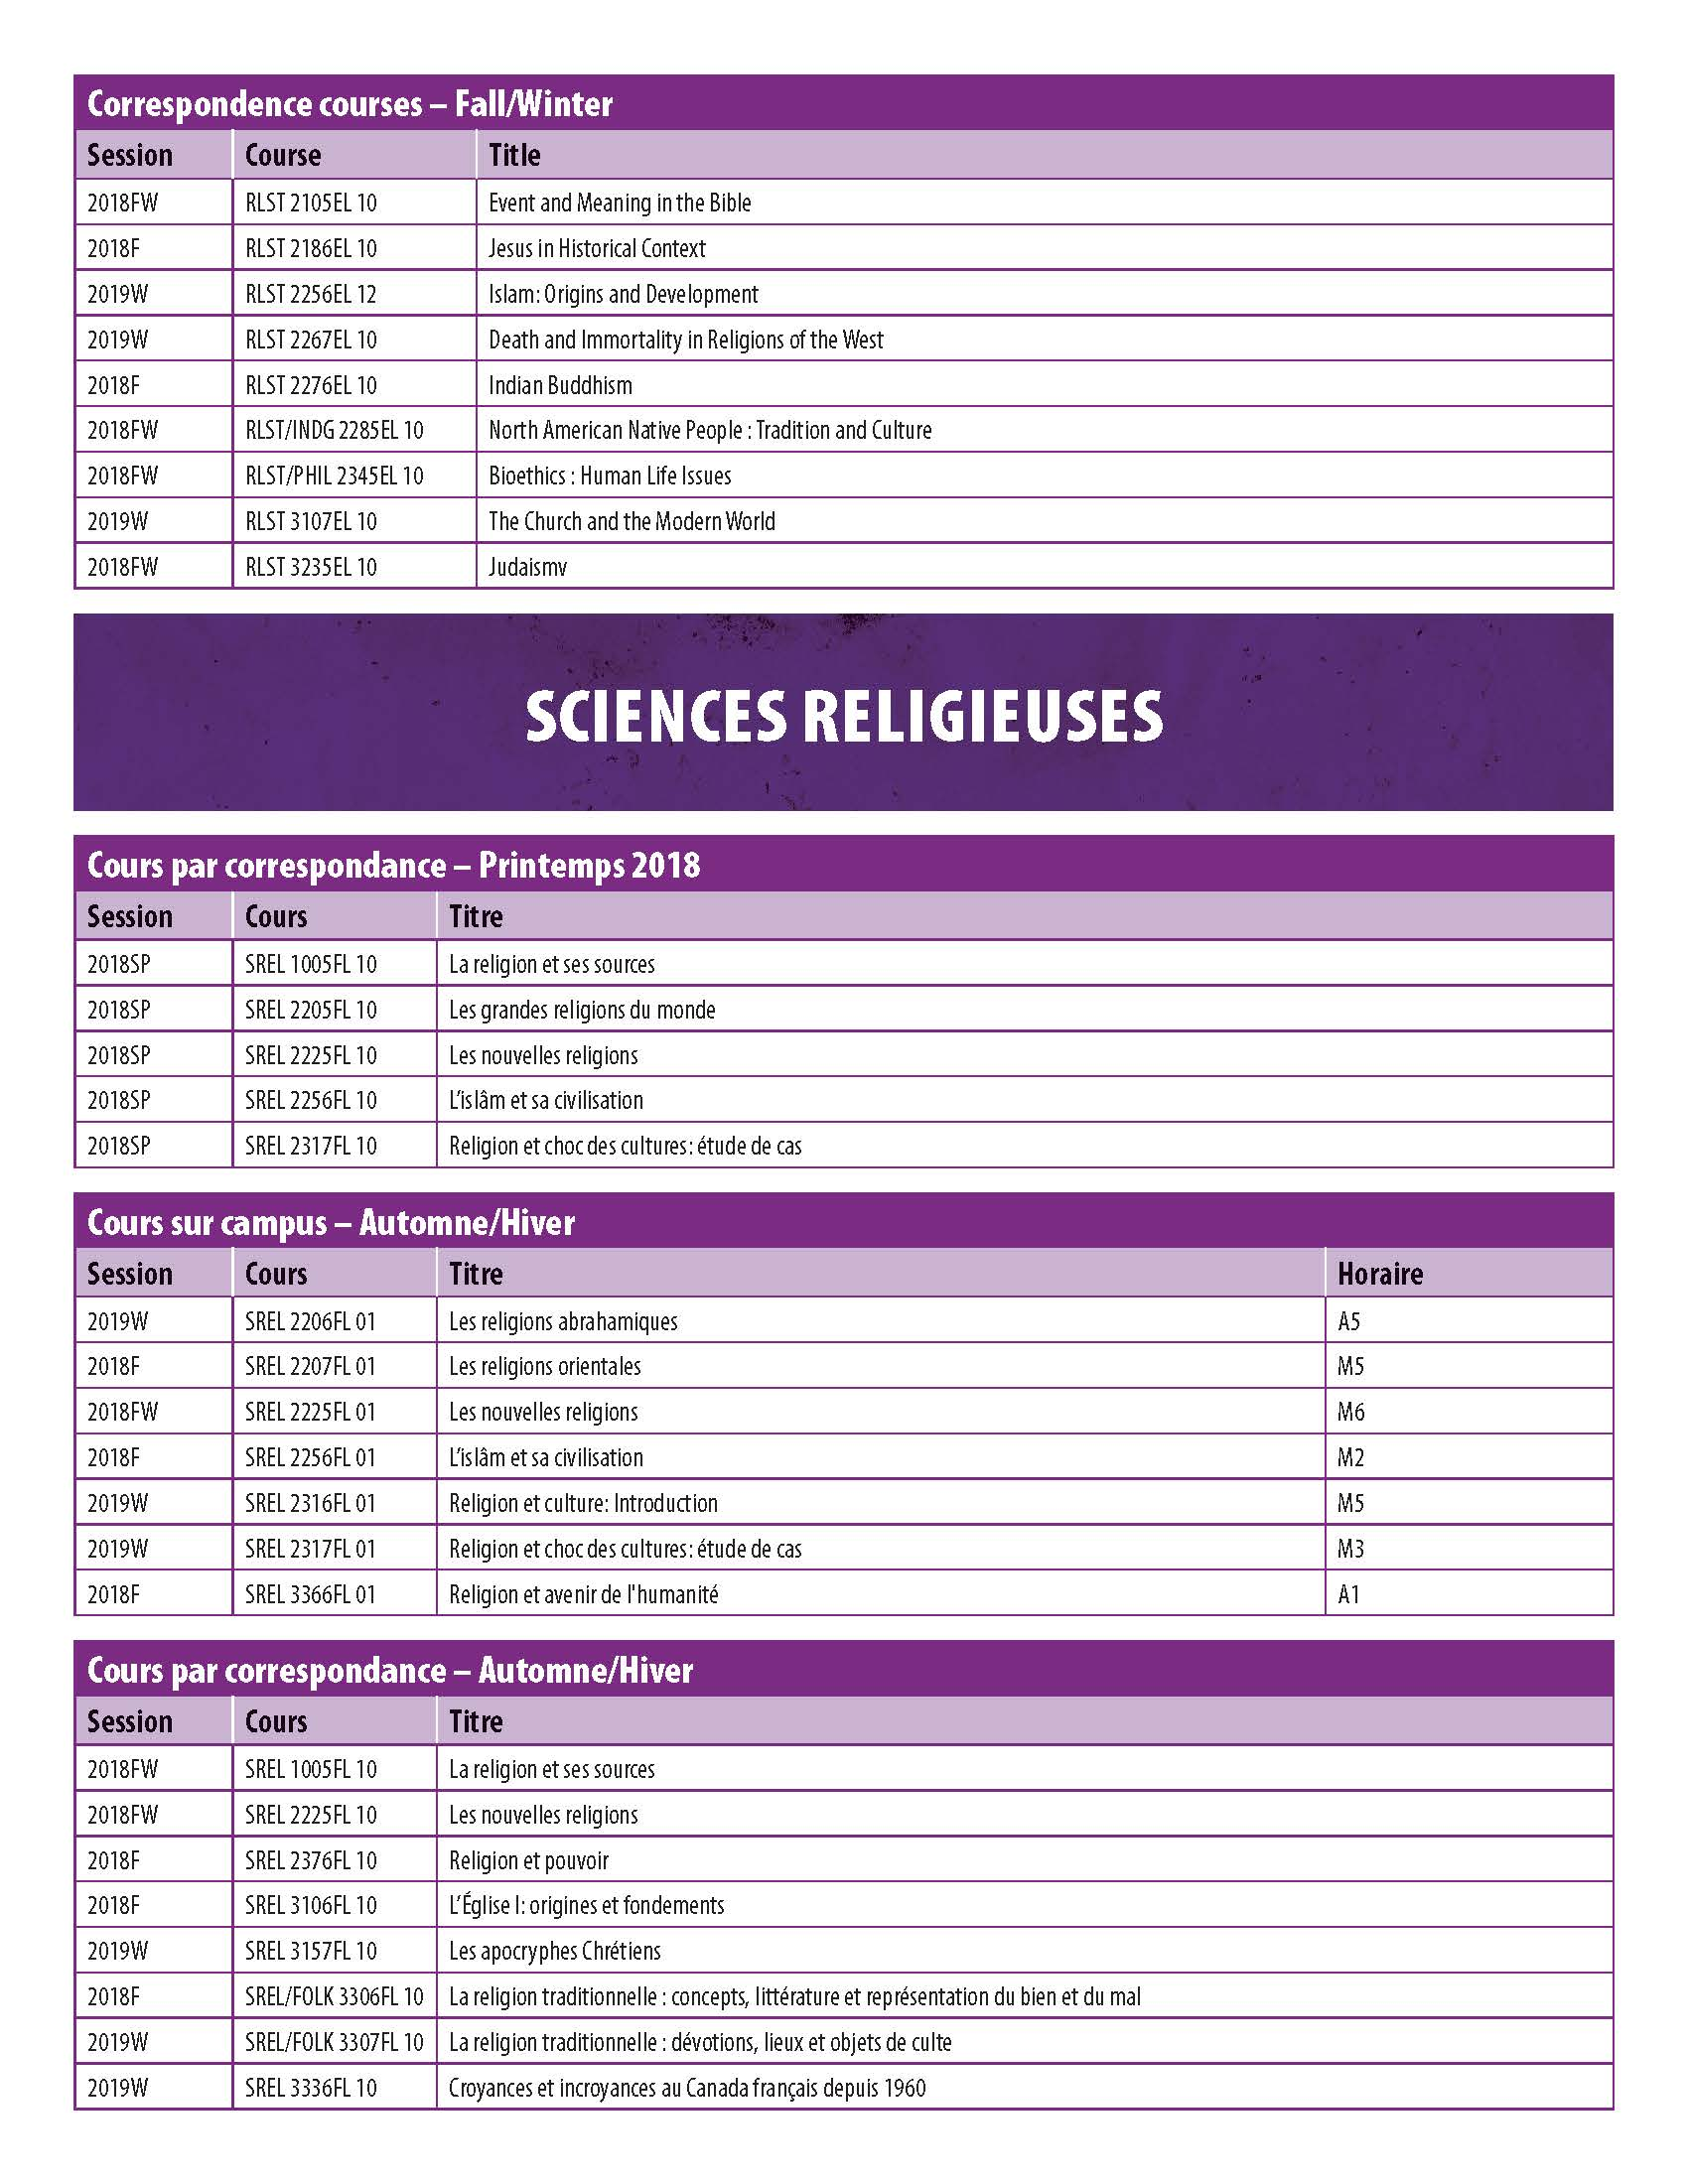 US CourseTimetable 2018 Page 10